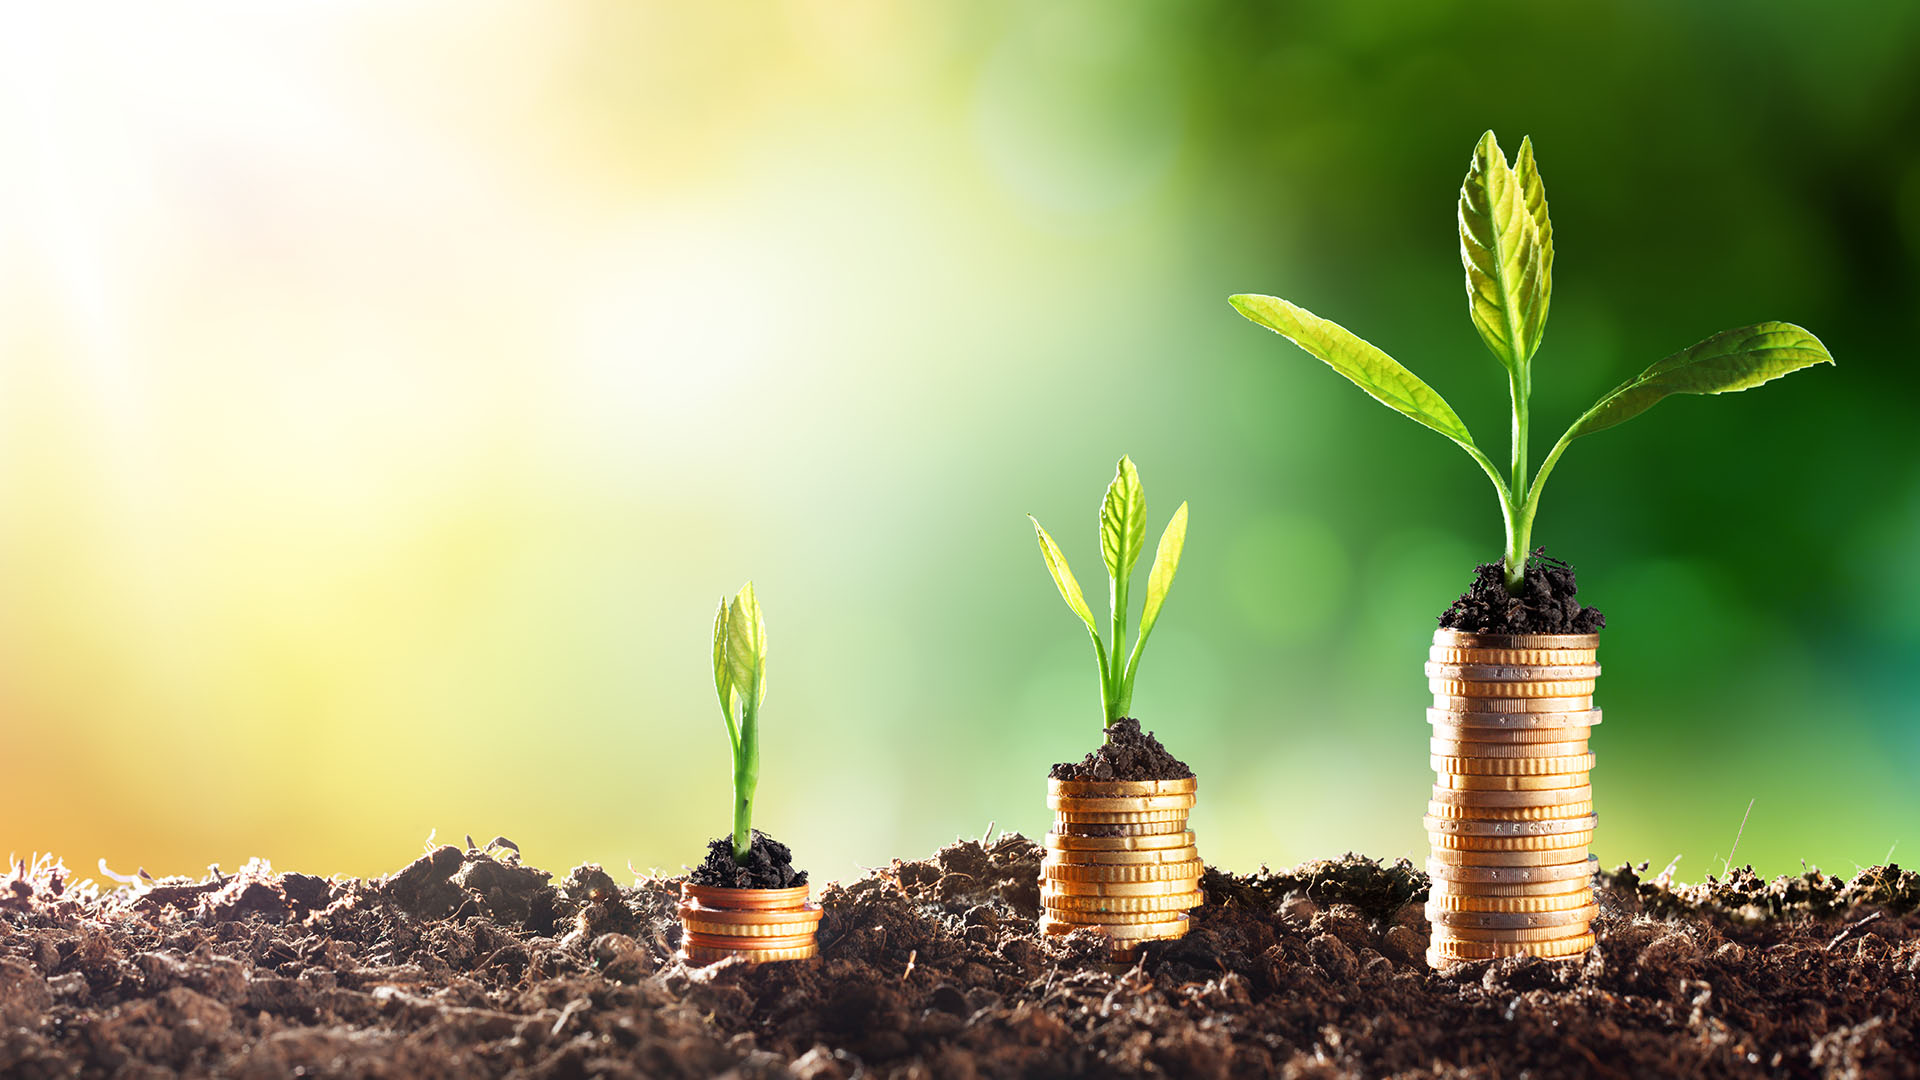 Socially responsible investment options